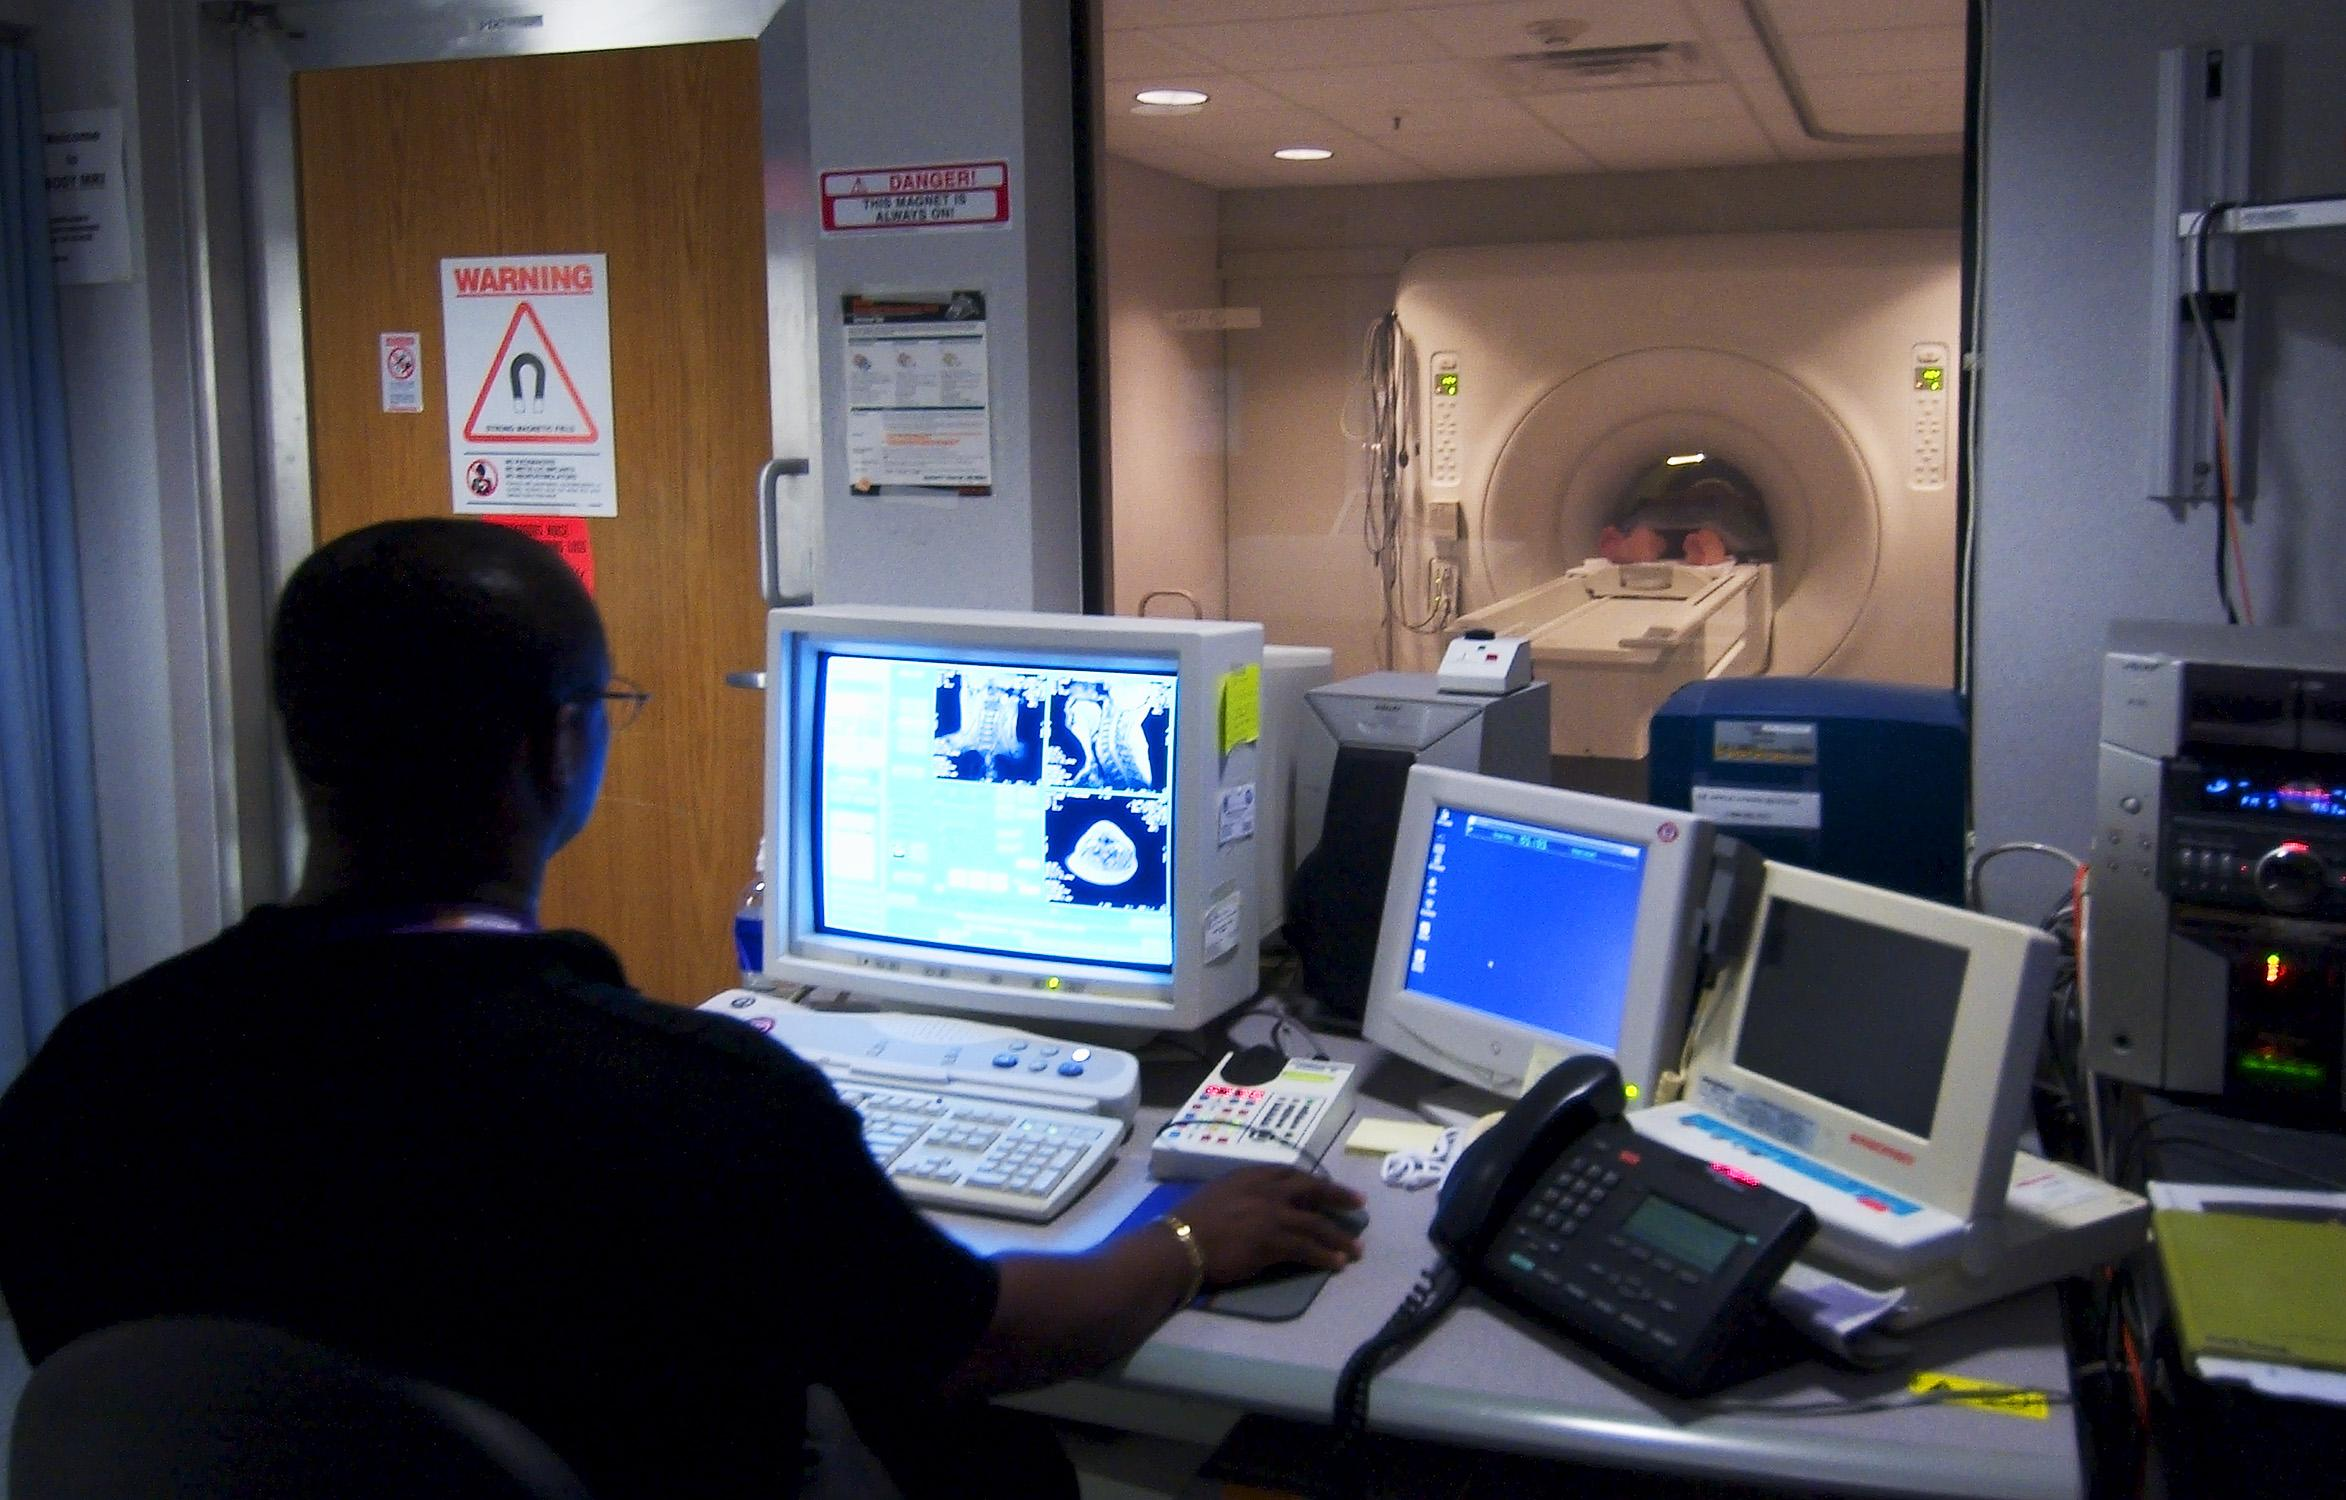 Researchers used resting-state functional magnetic resonance imaging (fMRI) to measure brain activity. (U.S. Navy / Wikimedia Commons)